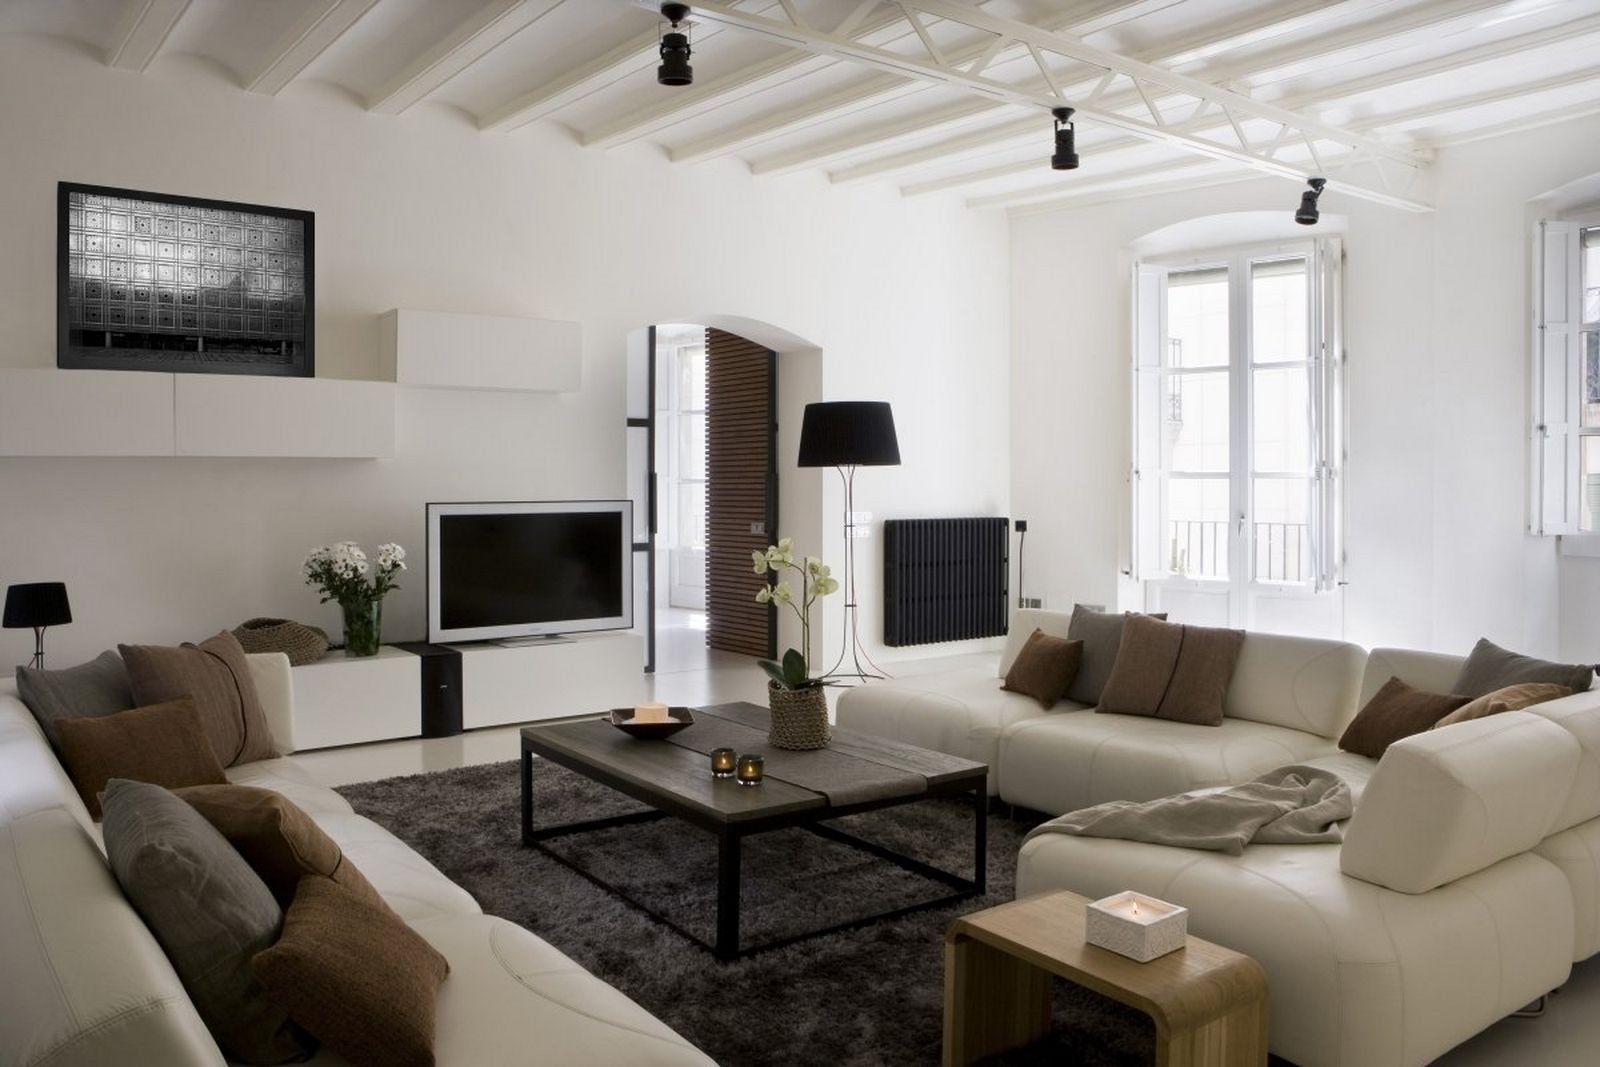 10 Ideal Living Room Ideas For Apartments decorating apartment living room gorgeous design ideas lovable